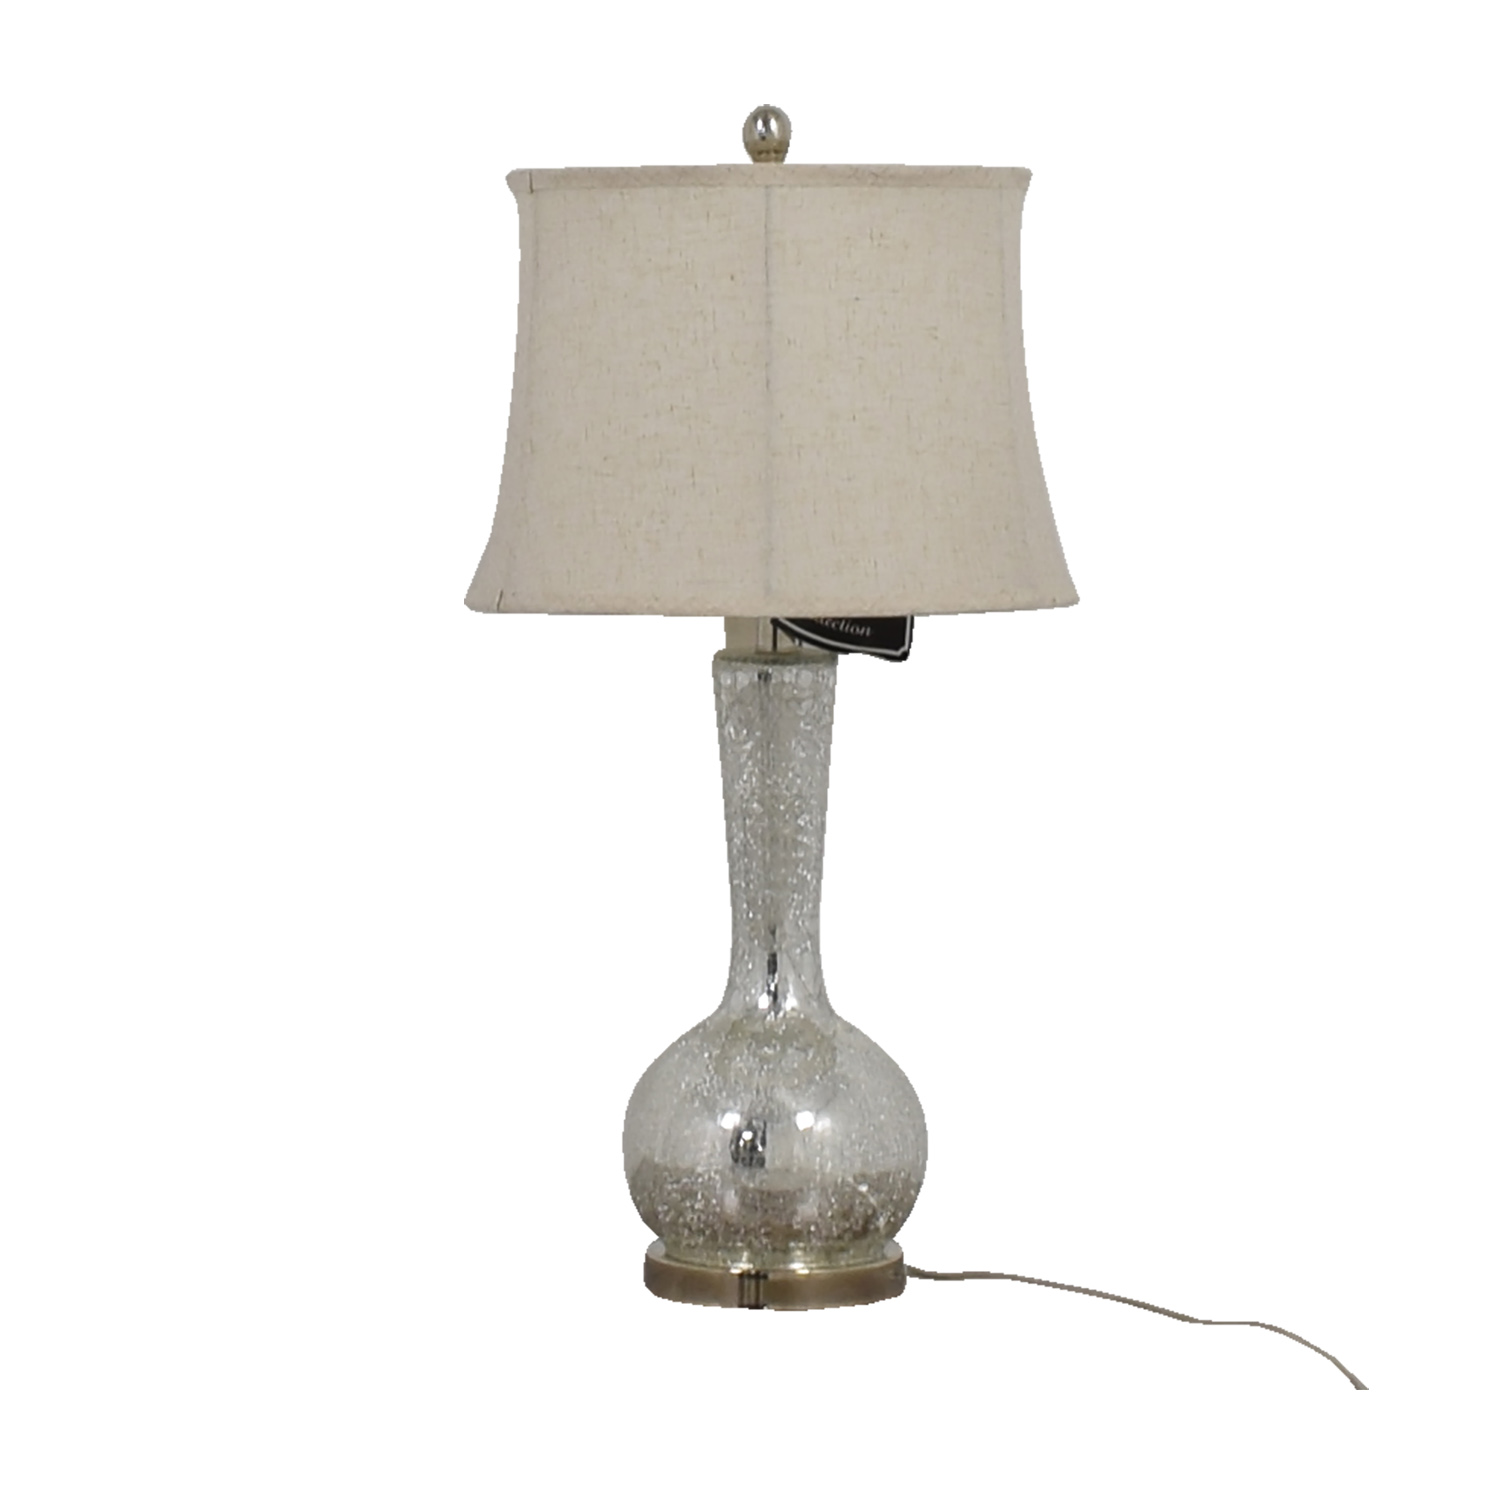 Martin Richards Crackle Glass Table Lamp / Lamps